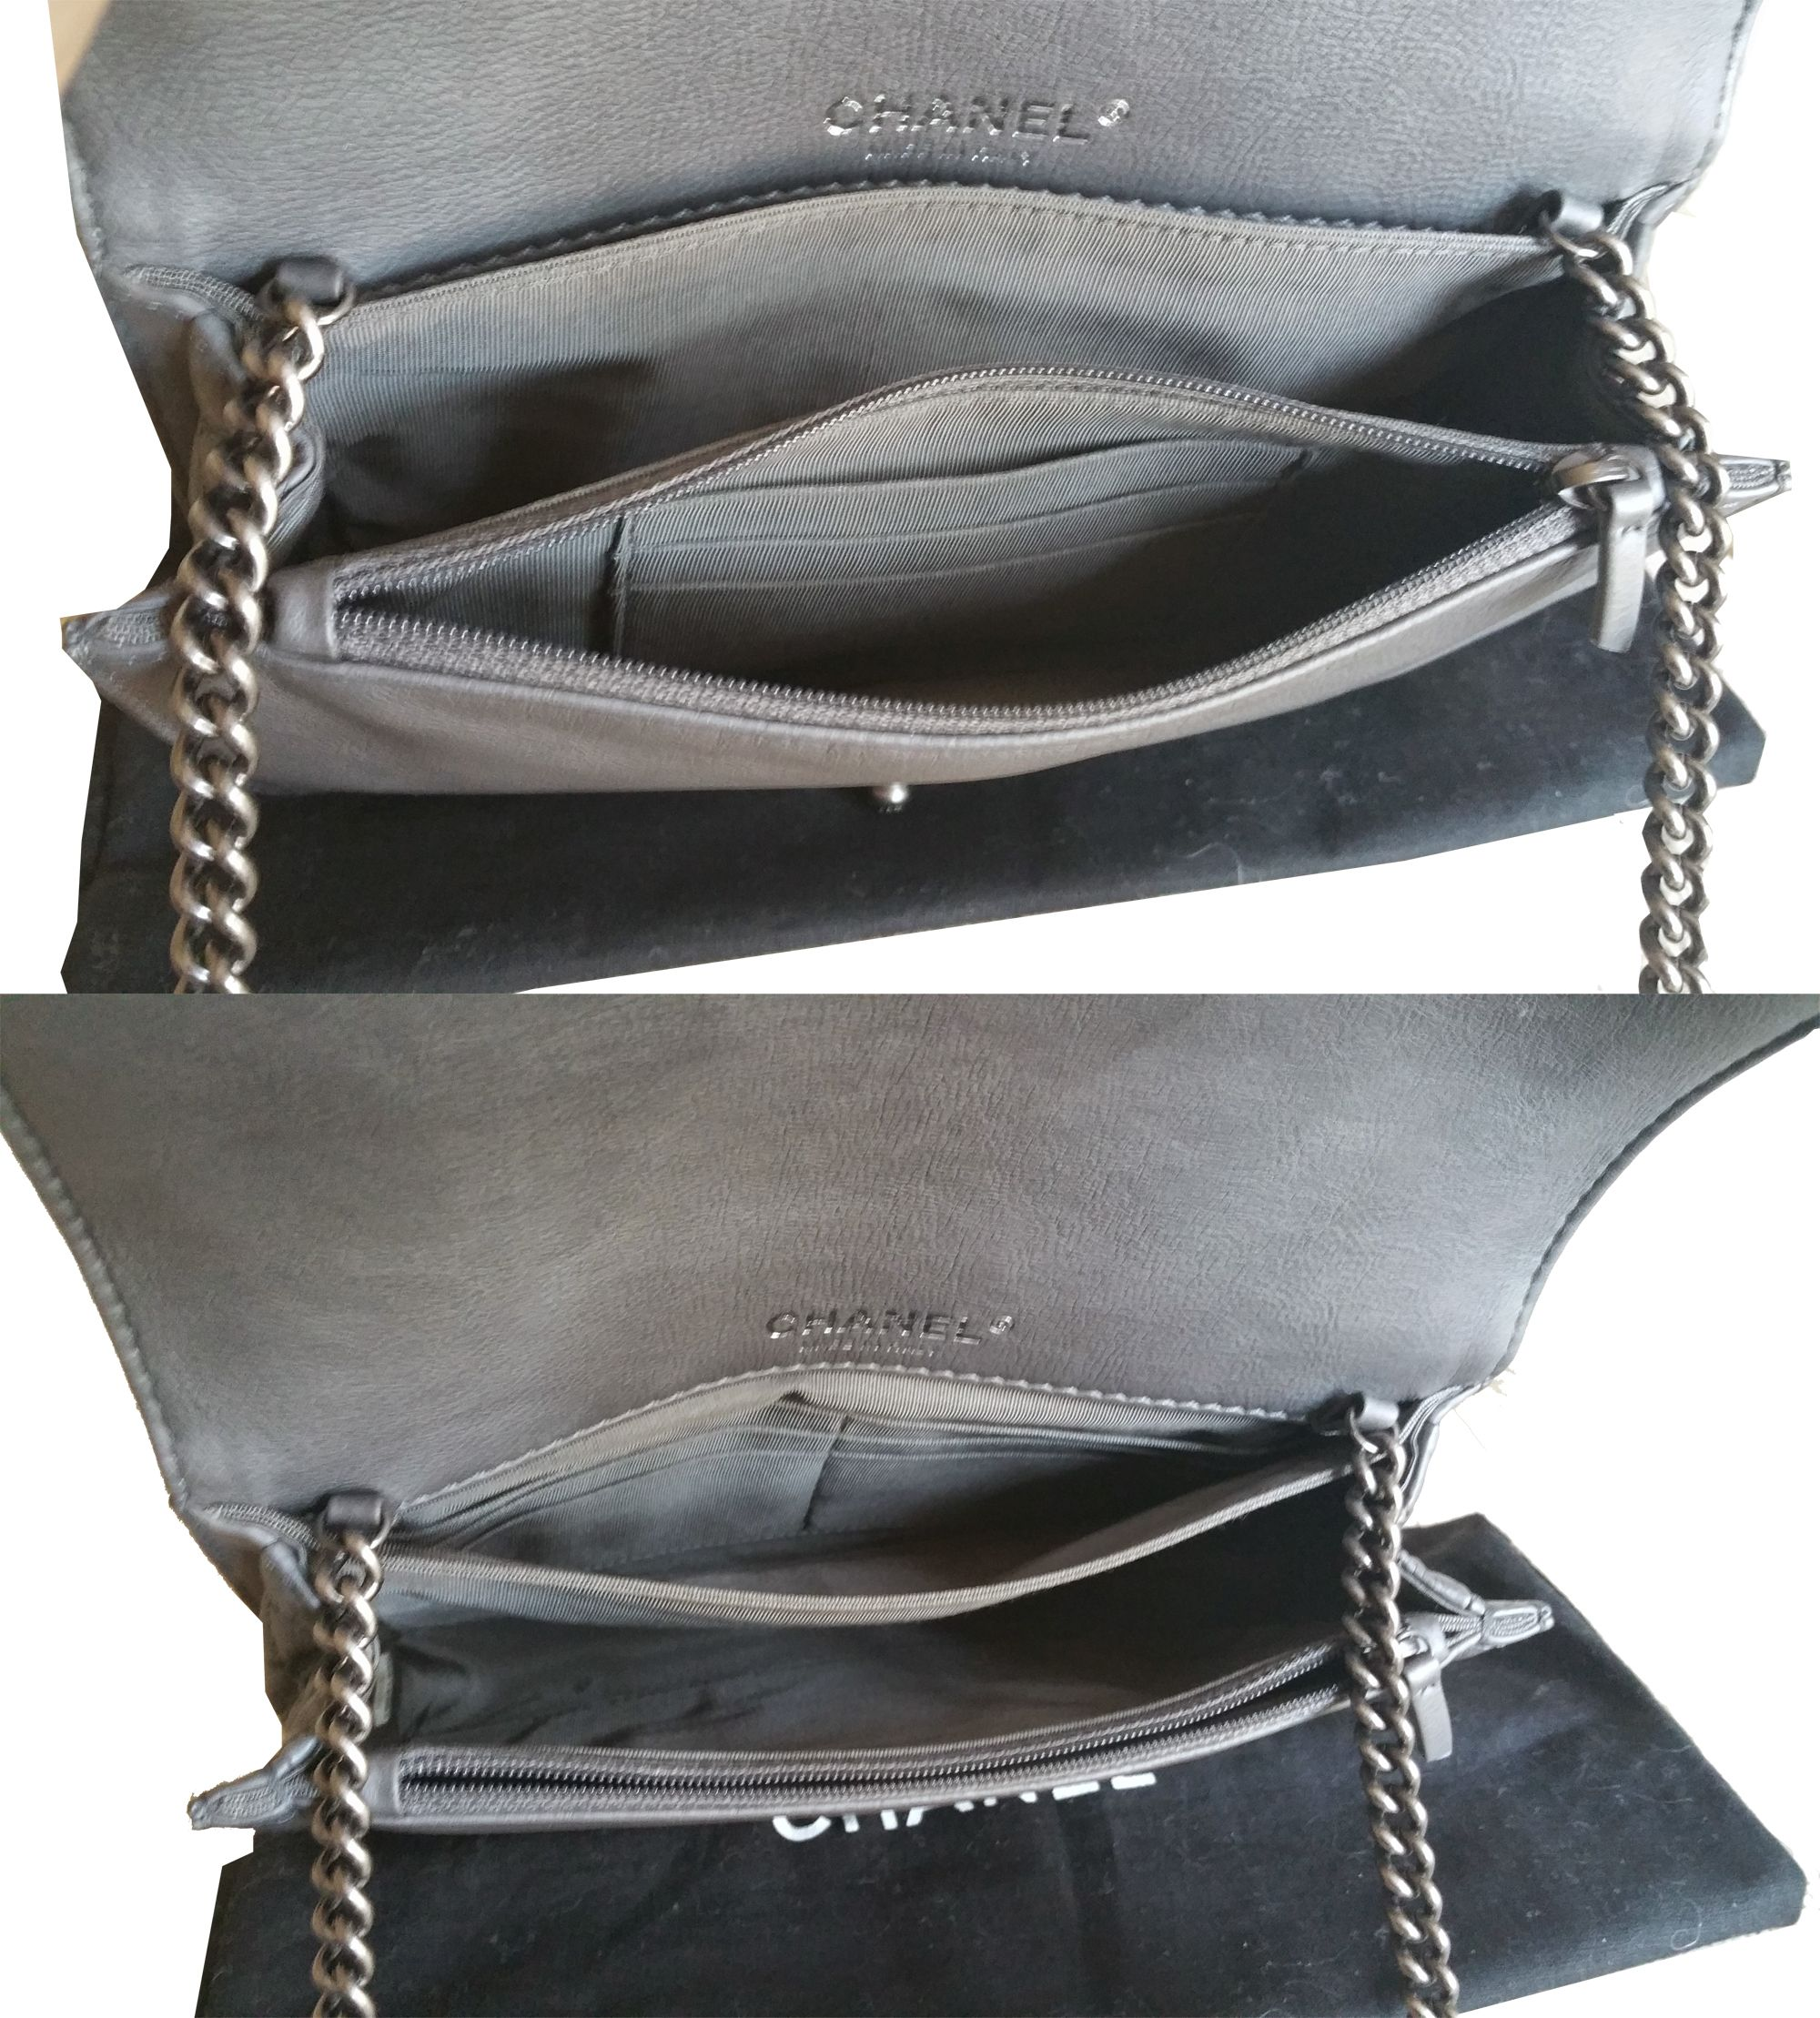 Non Quilted Chanel Bags Non Quilted Crossbody Bag